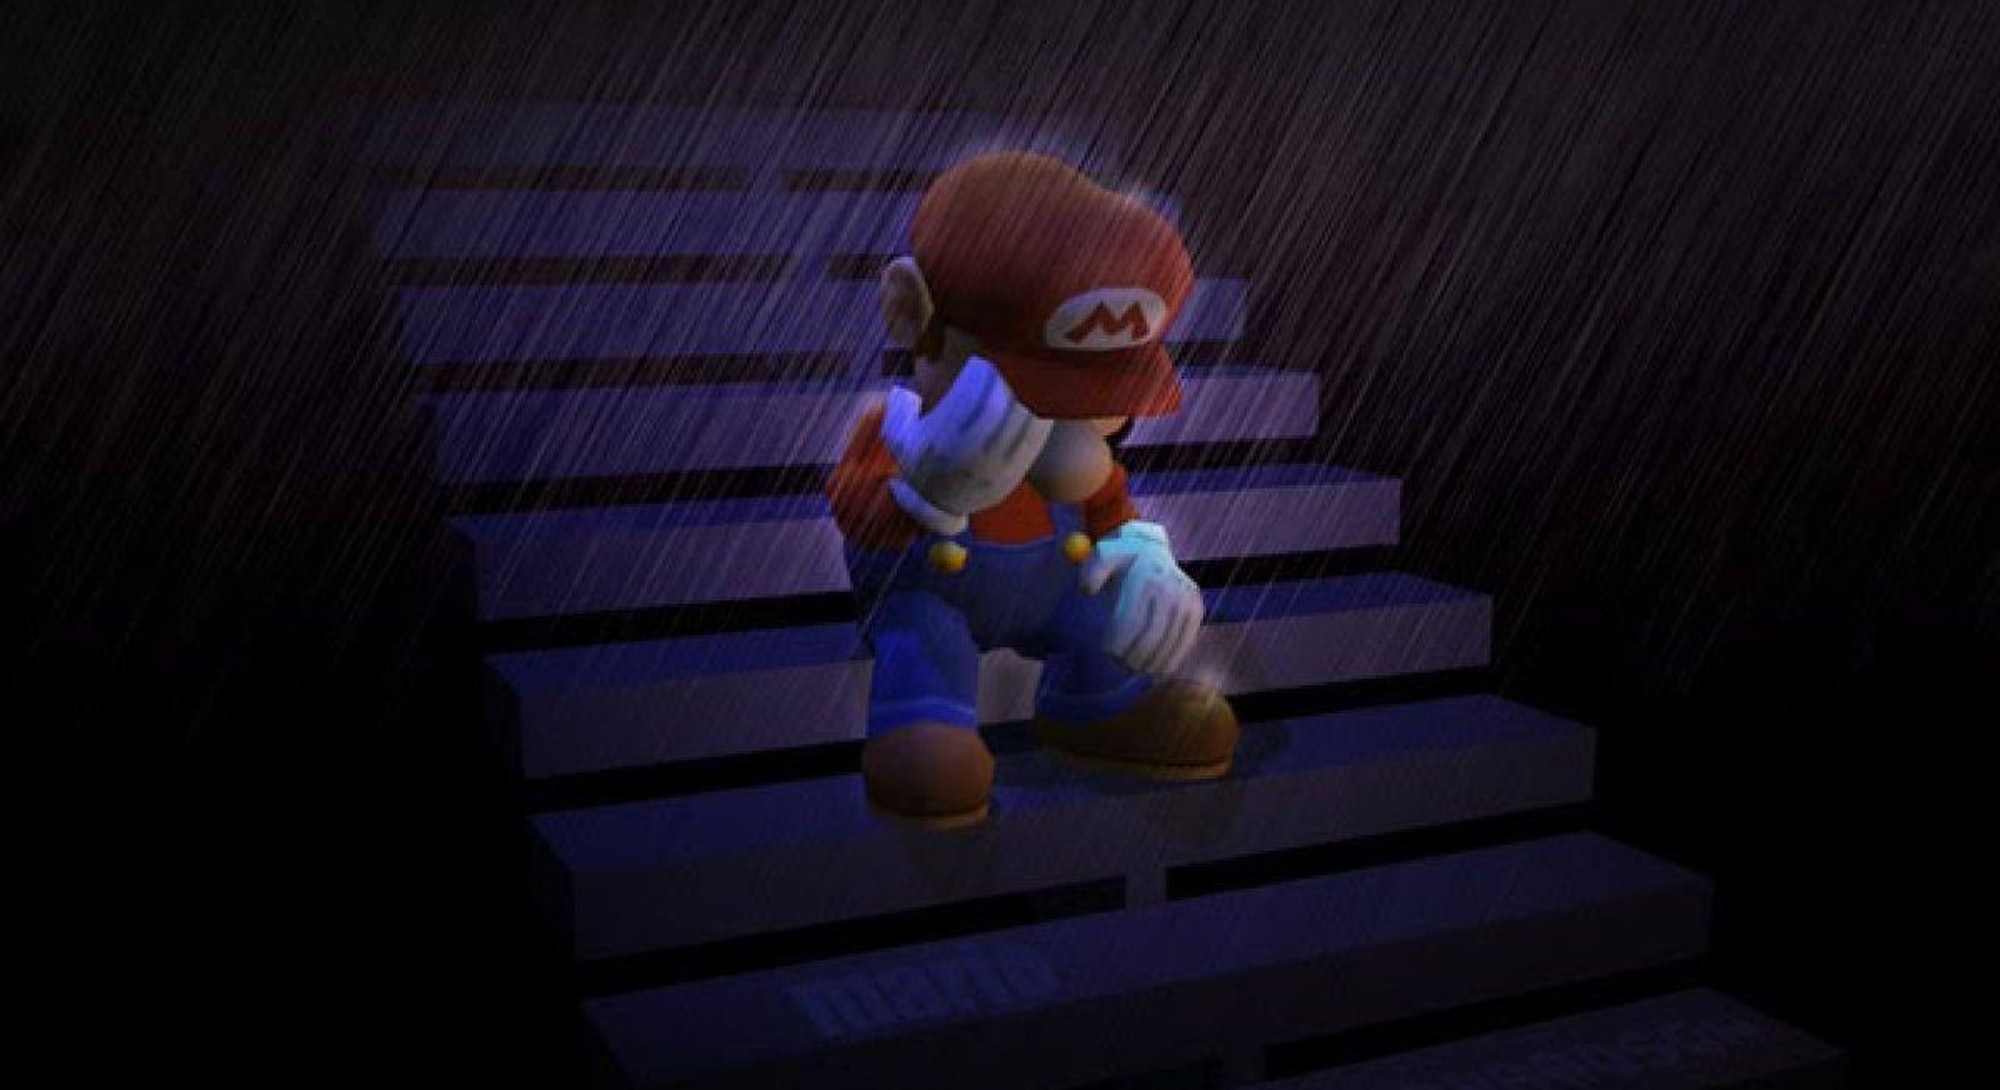 Mario crying in the rain